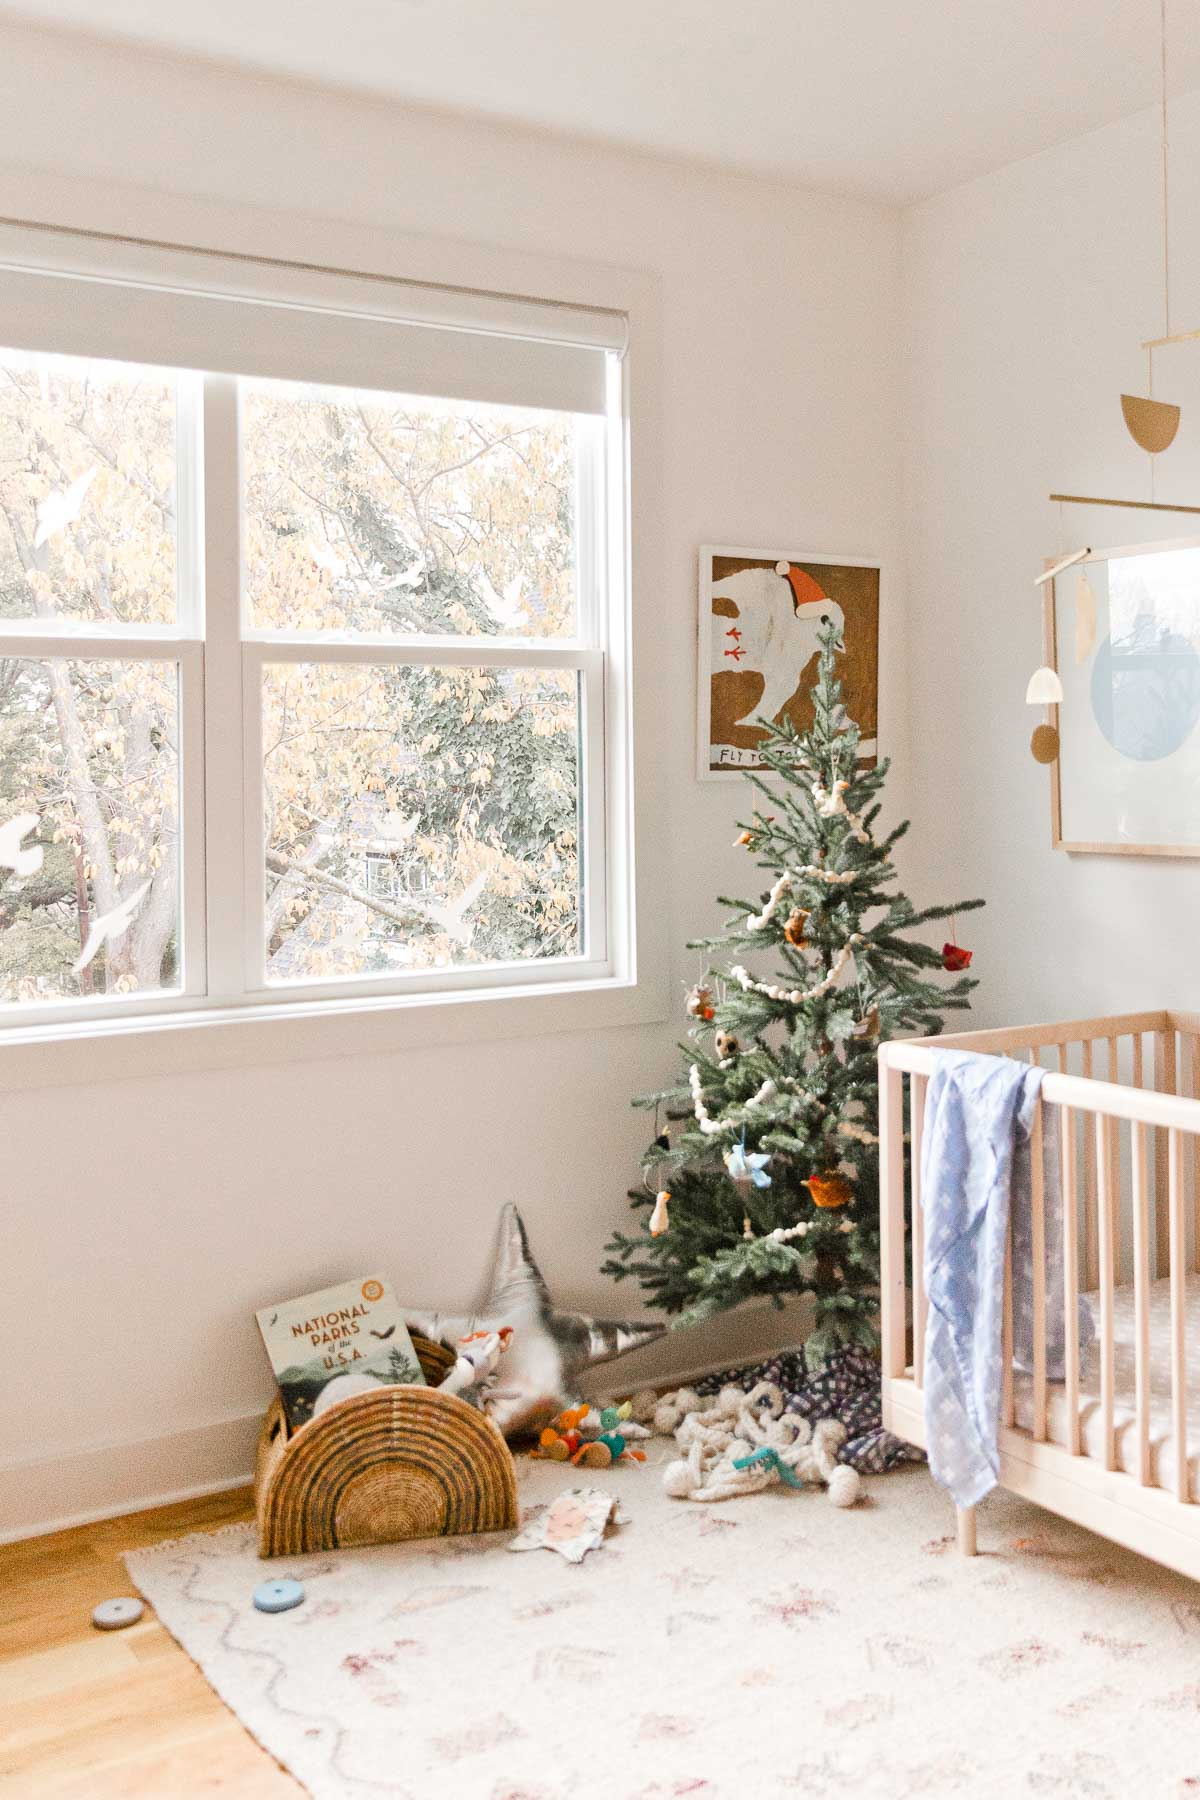 Holiday decorating in a kids room - with a Christmas tree and metallic star pillows.